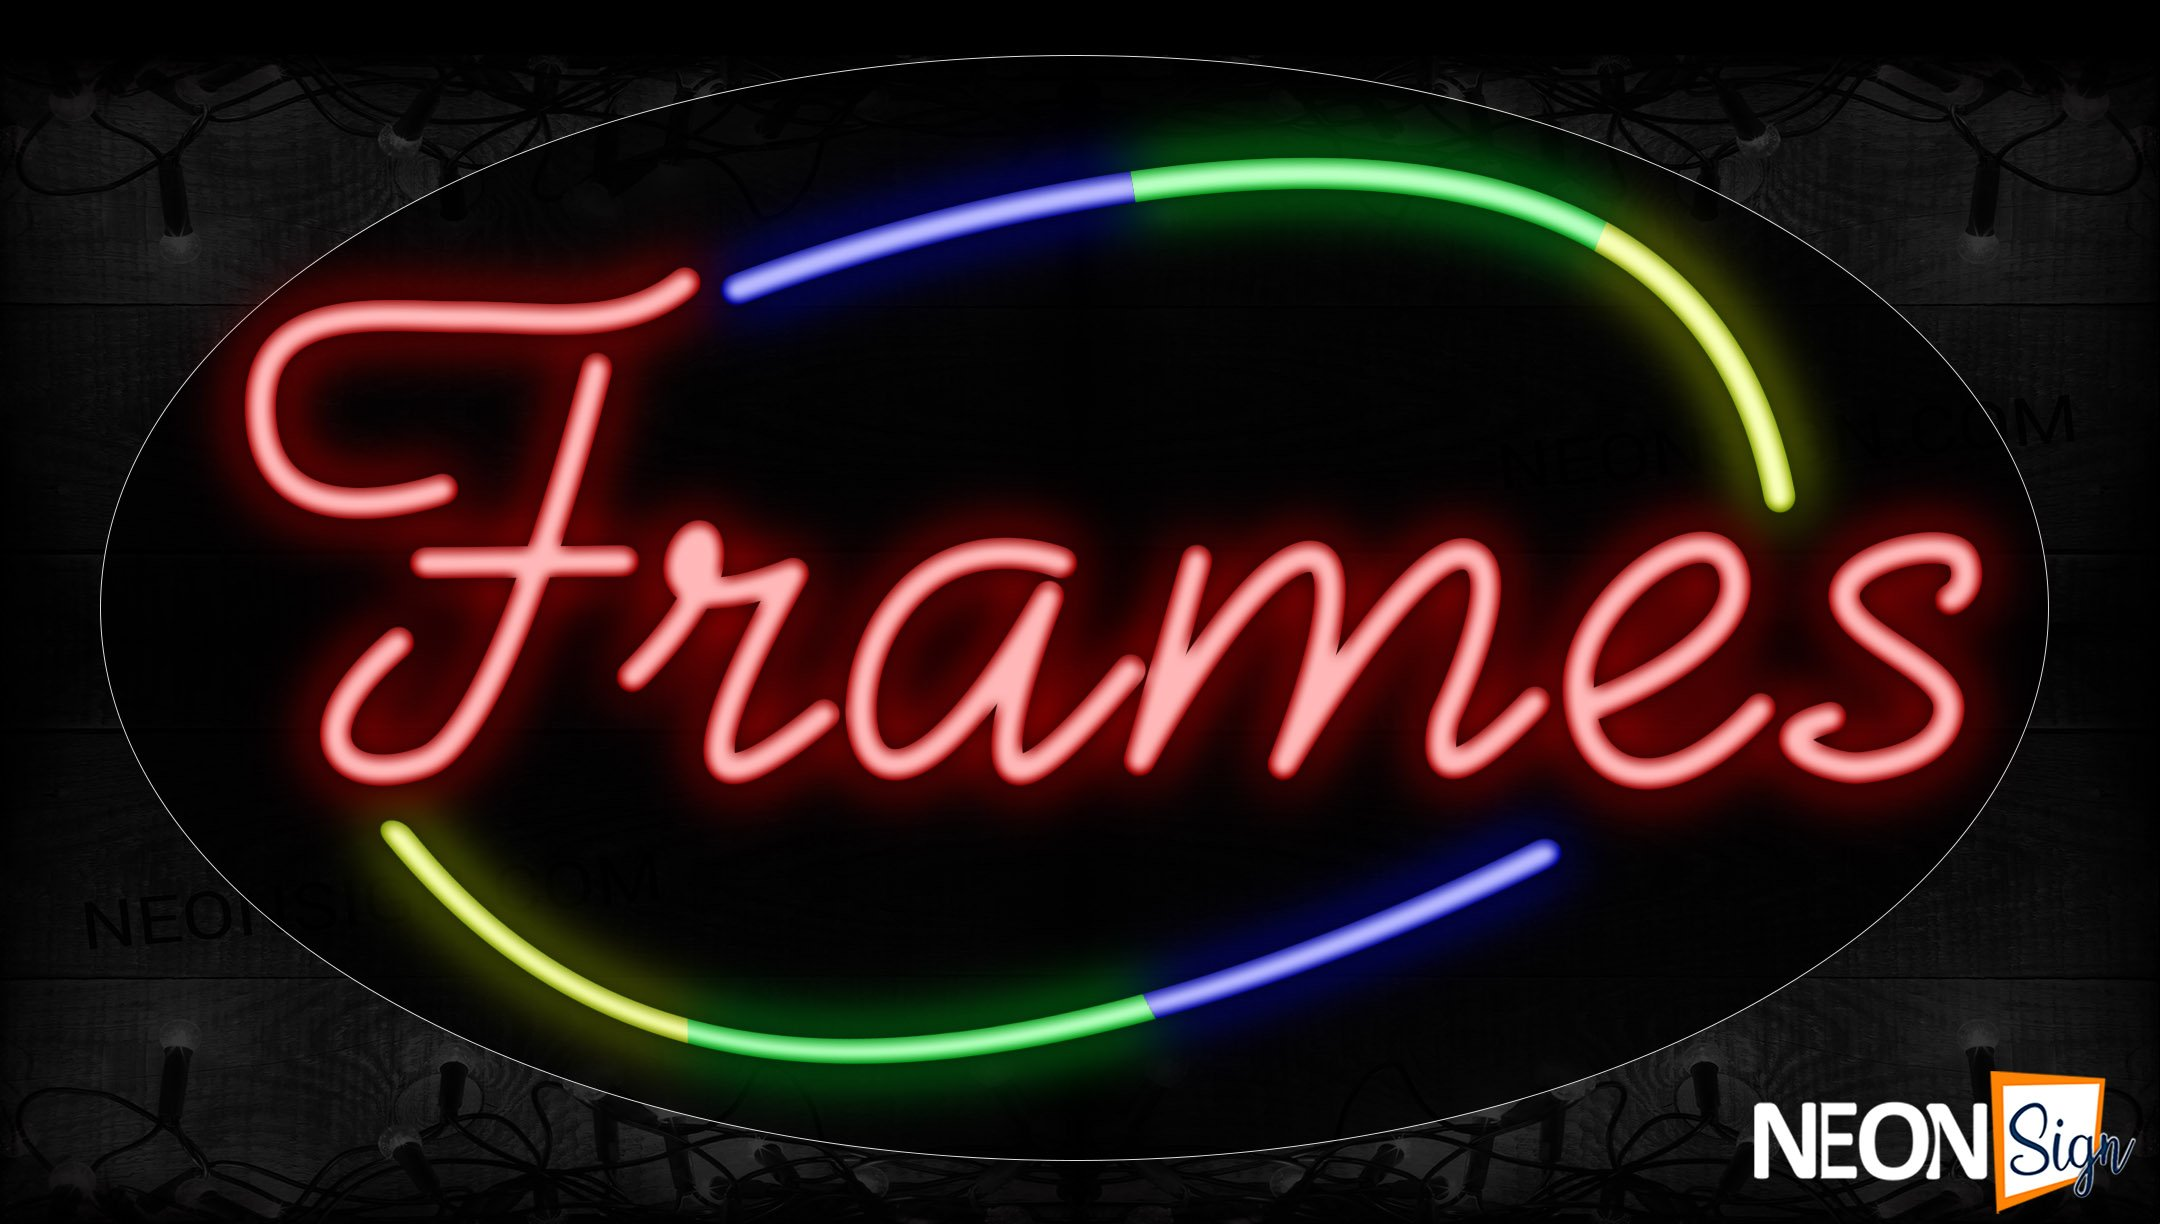 Image of 14520 Frames In Red With Colorful Arc Border Neon Signs_17x30 Contoured Black Backing